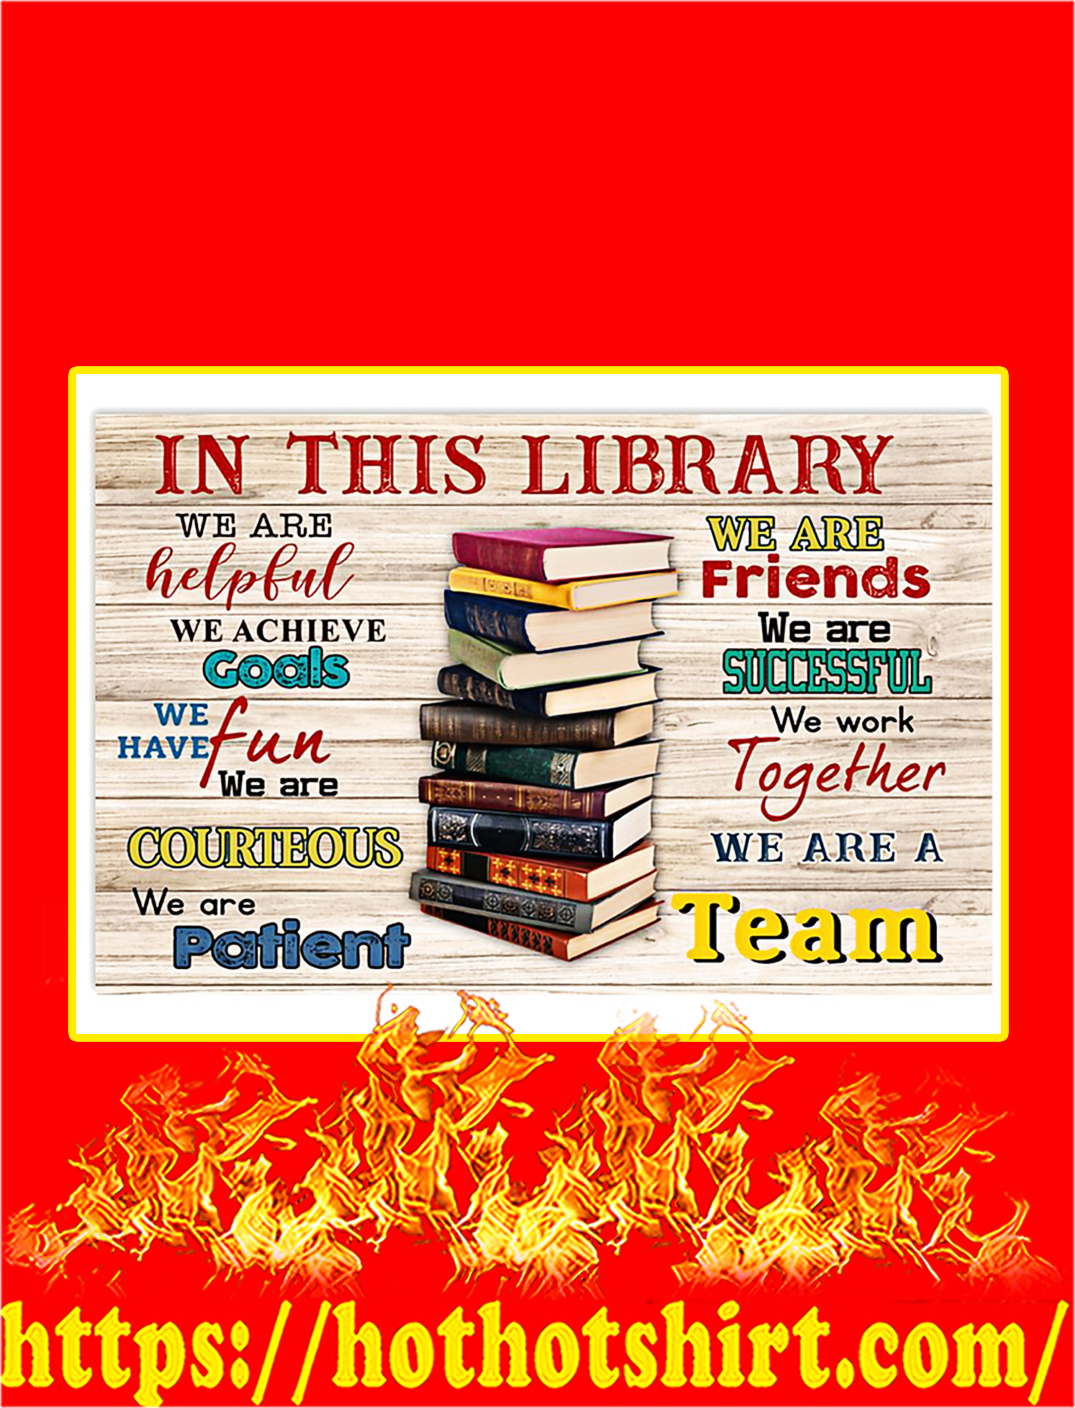 In this library we are a team poster - A1